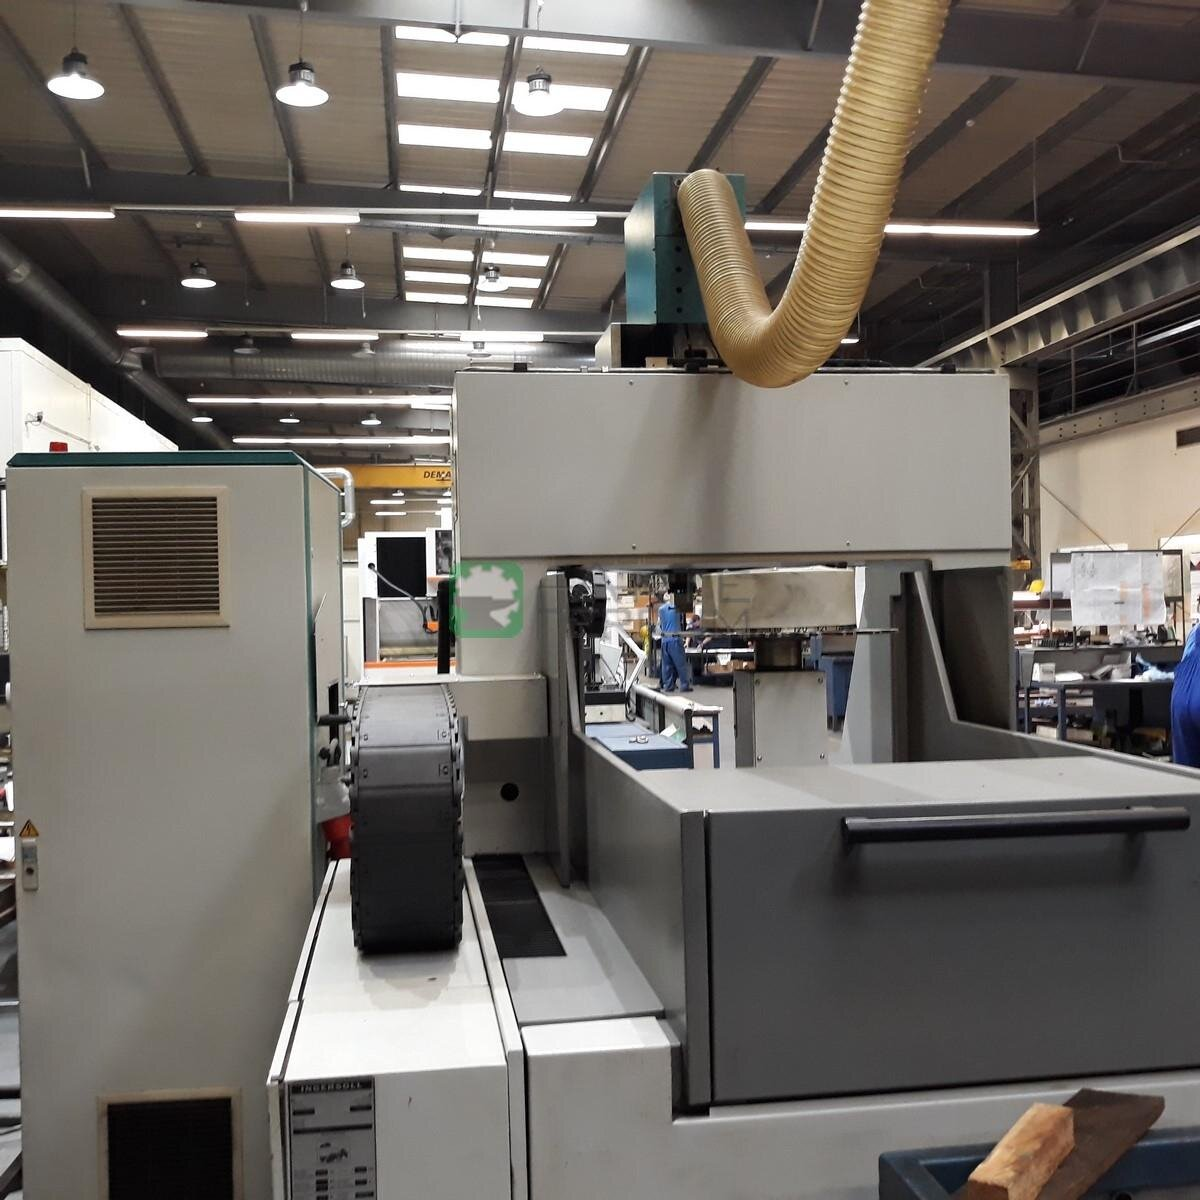 ingersoll gantry 800 edm used for sale (4)